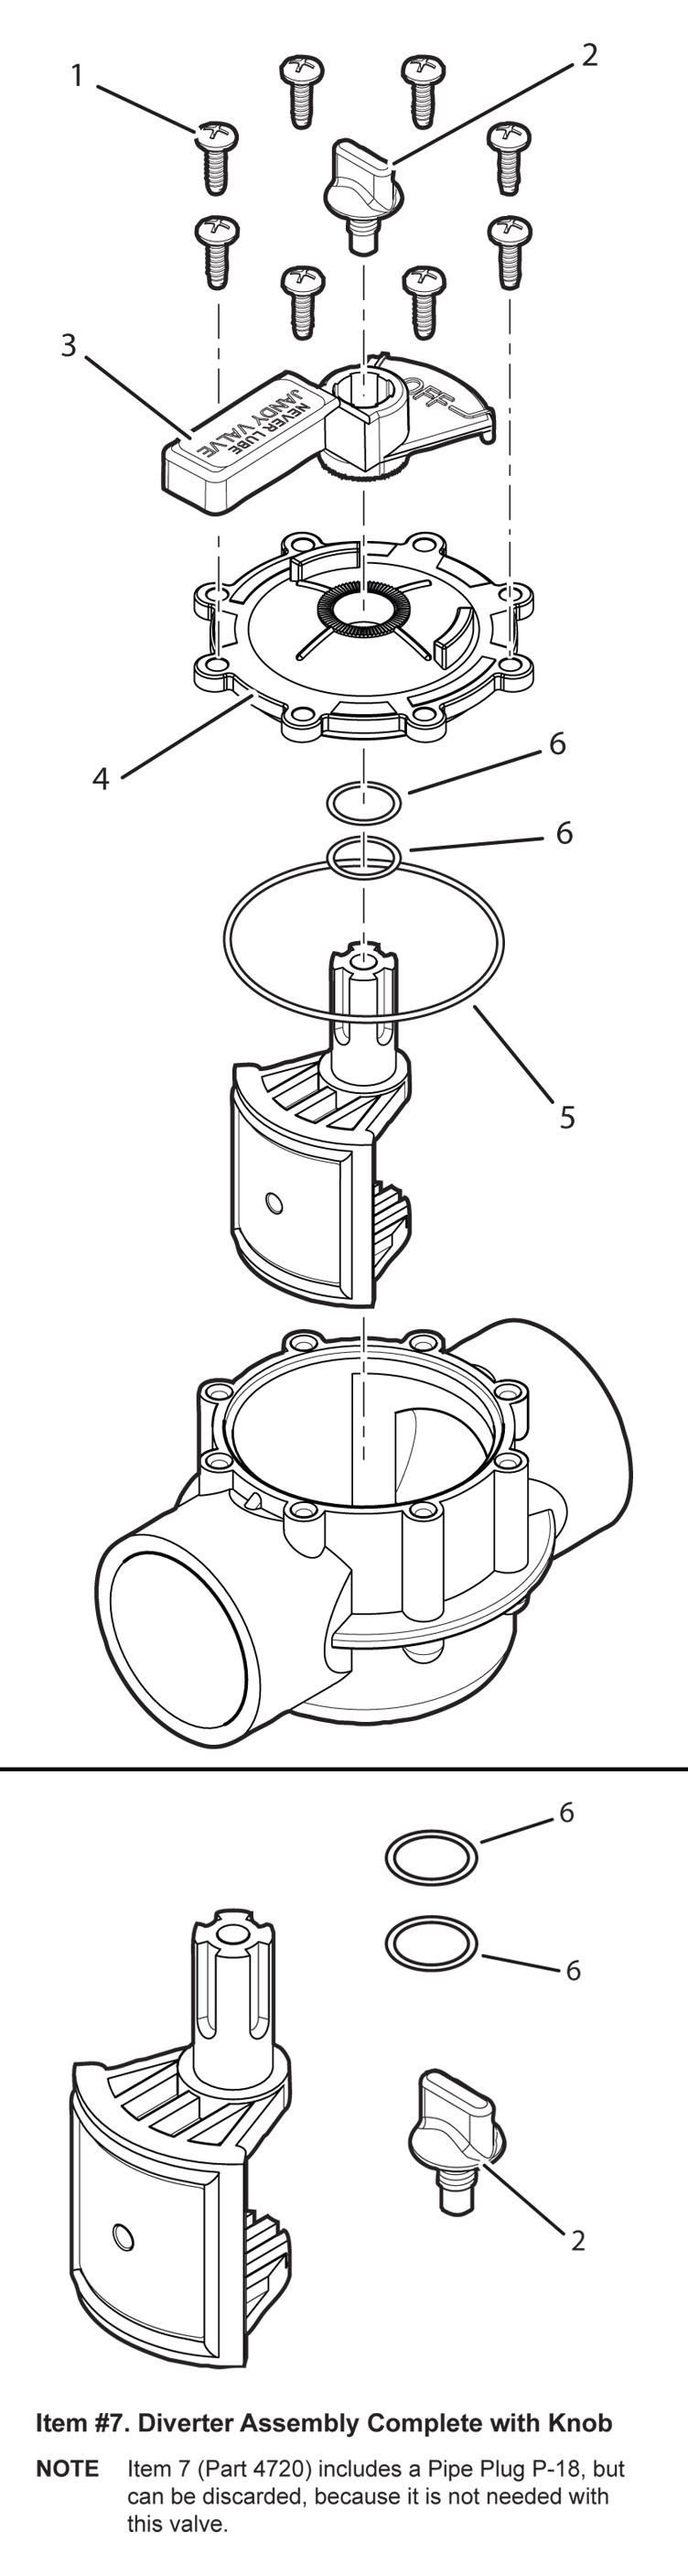 Jandy Valve Diagram Actuator Wiring Pool Supply Unlimited Pro Series Neverlube 752x2814